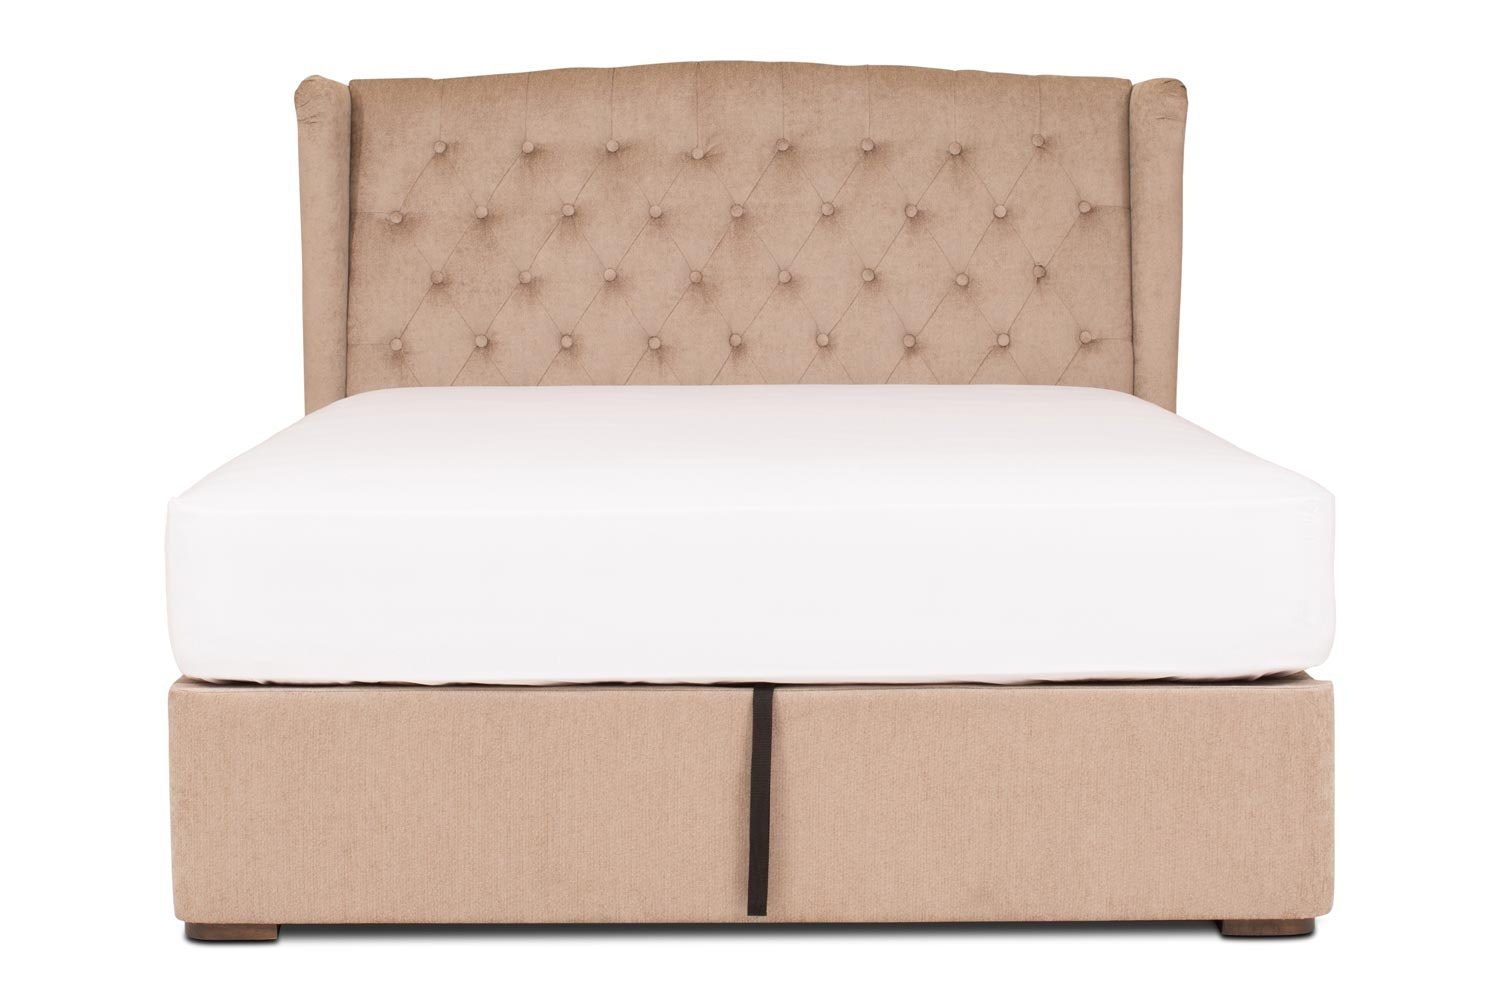 Duval Ottoman Bed with Winged Headboard | 4Ft6 | Mink